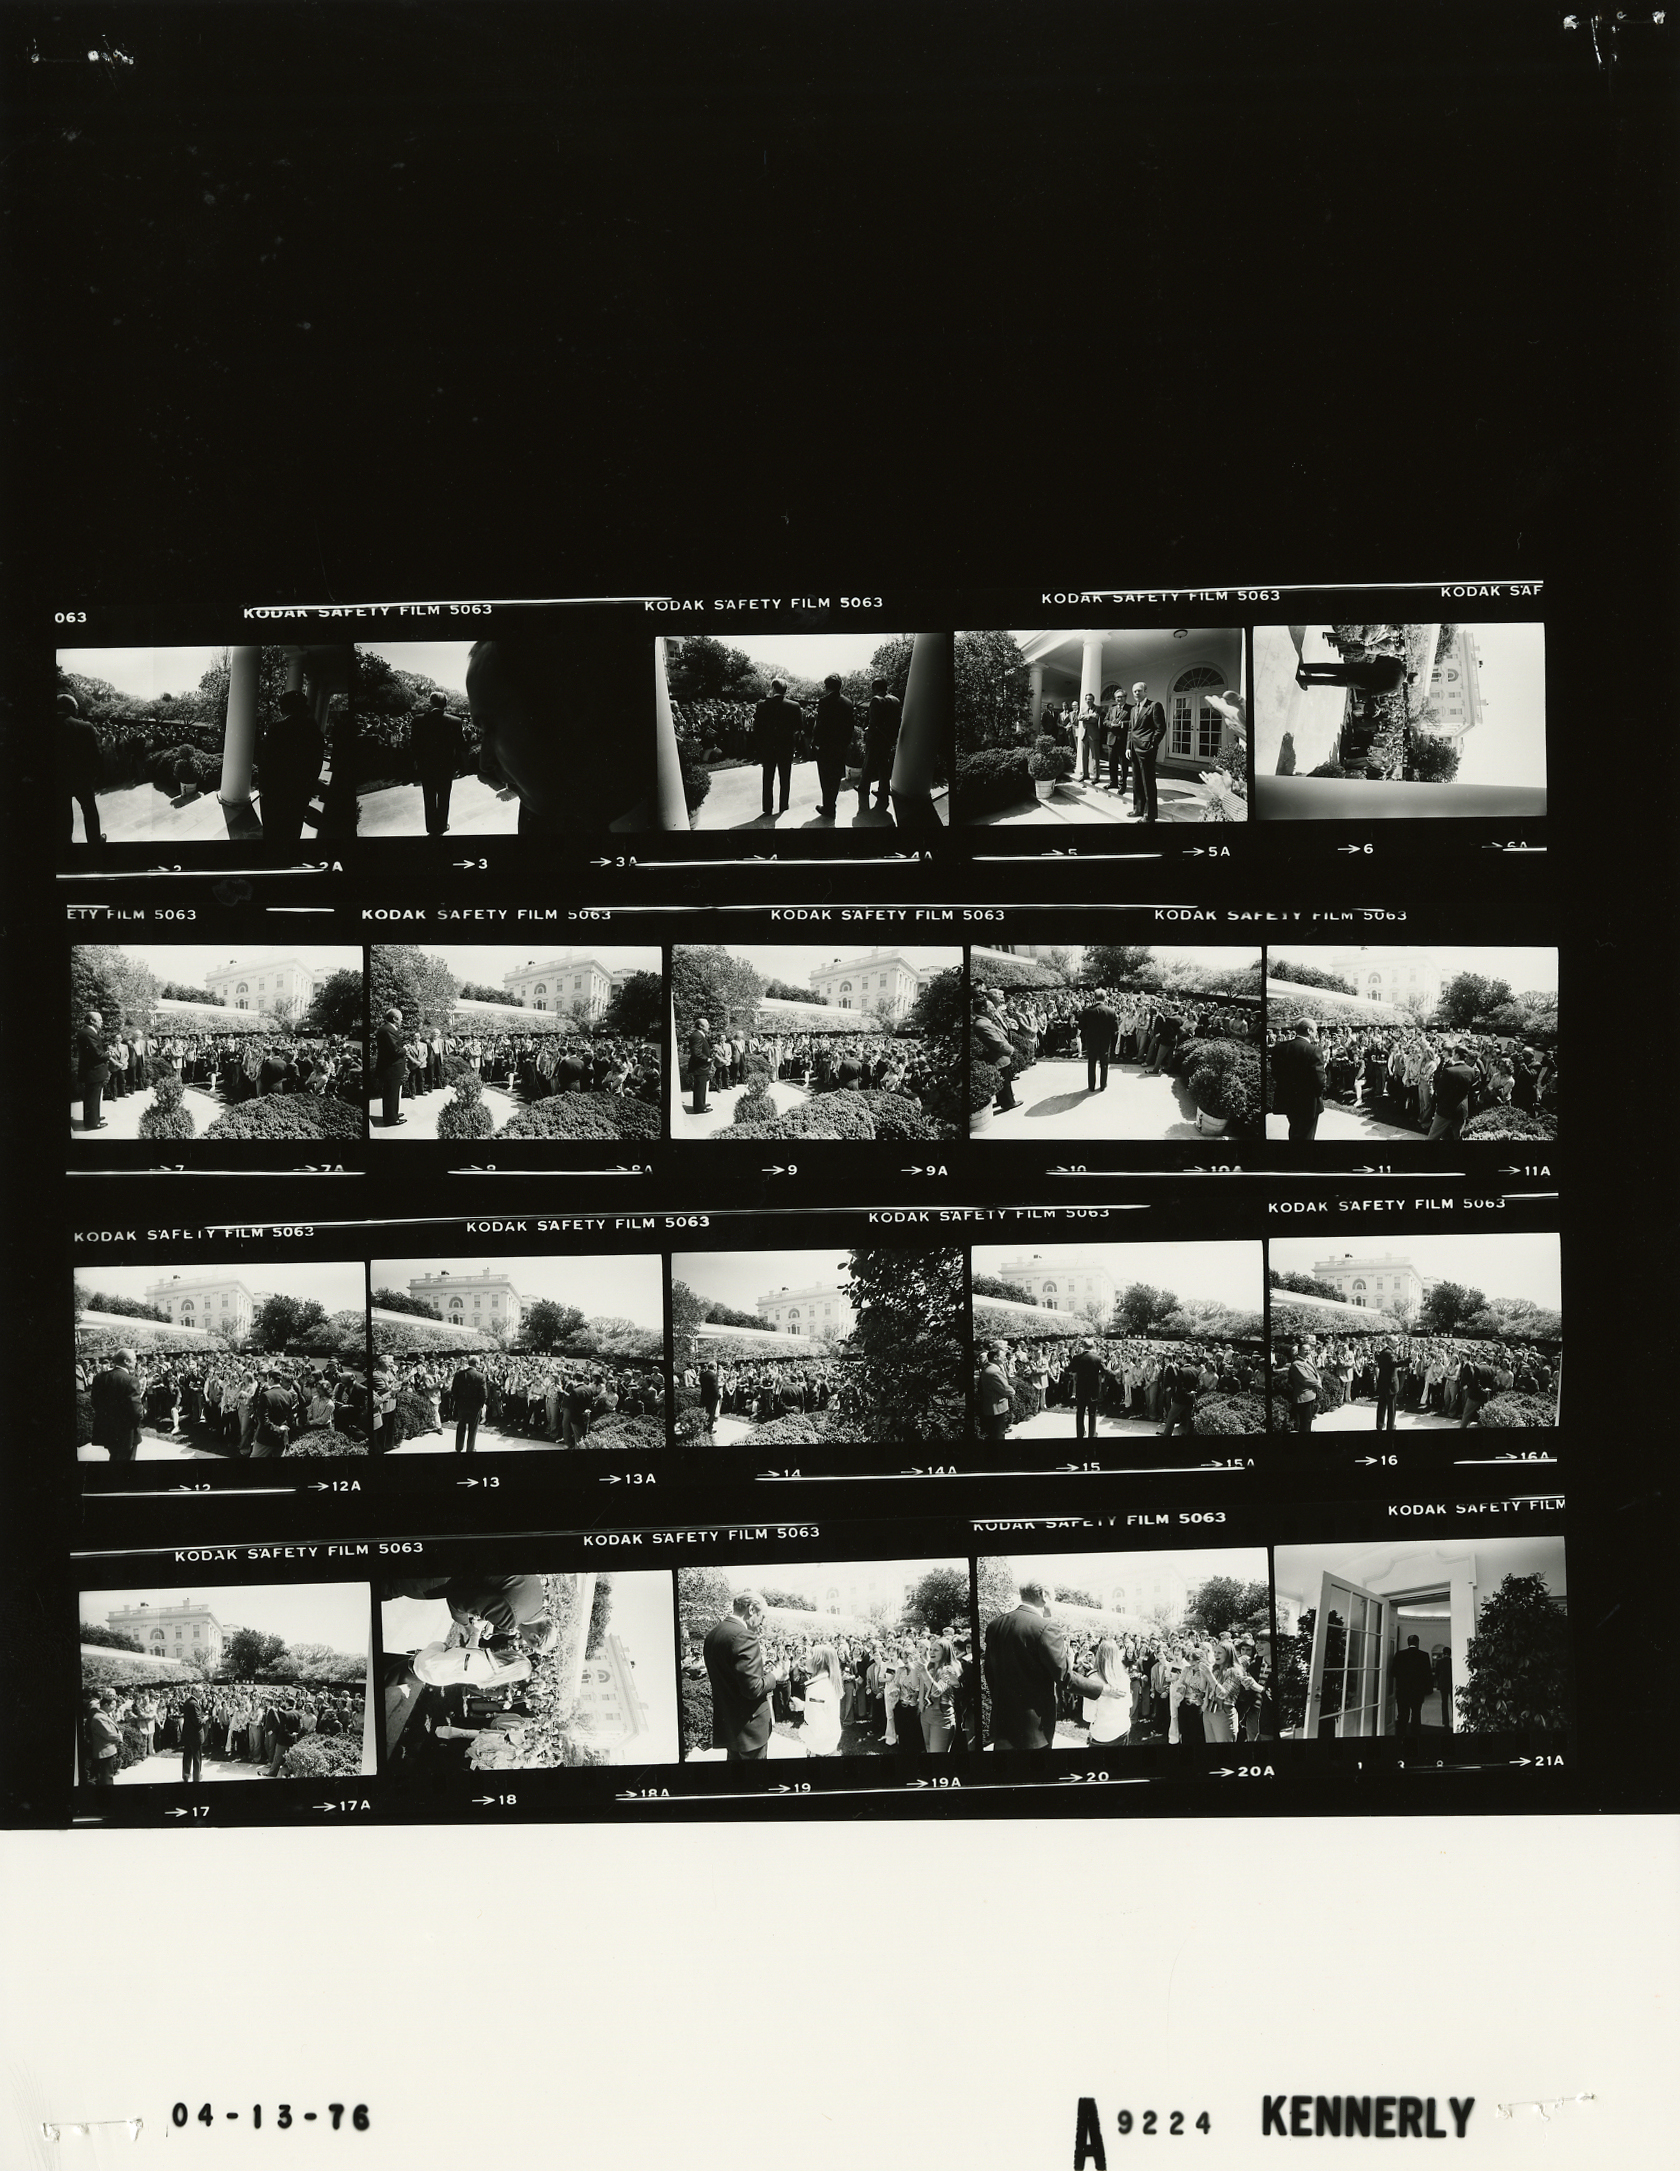 File:Ford A9224 NLGRF photo contact sheet (1976-04-13